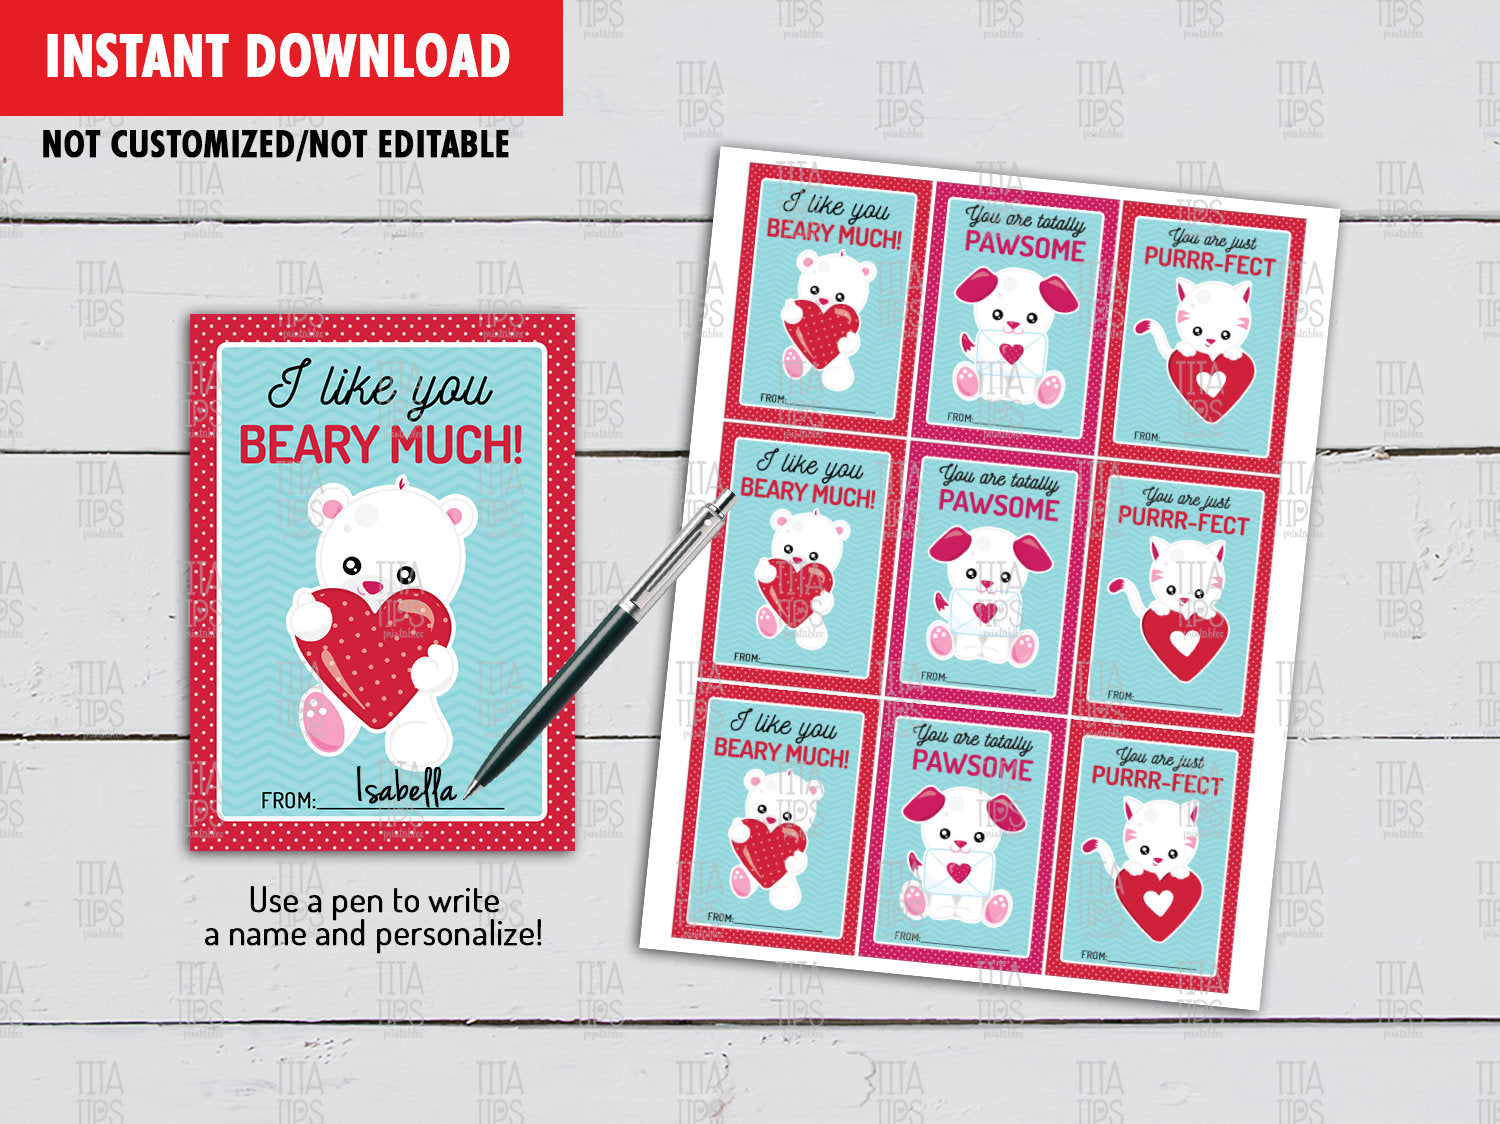 Animals Valentine's Day Card DIY Printable, Dog, Cat, Teddy Bear School Exchange Tag Ideas, Instant Download - TitaTipsPrintables